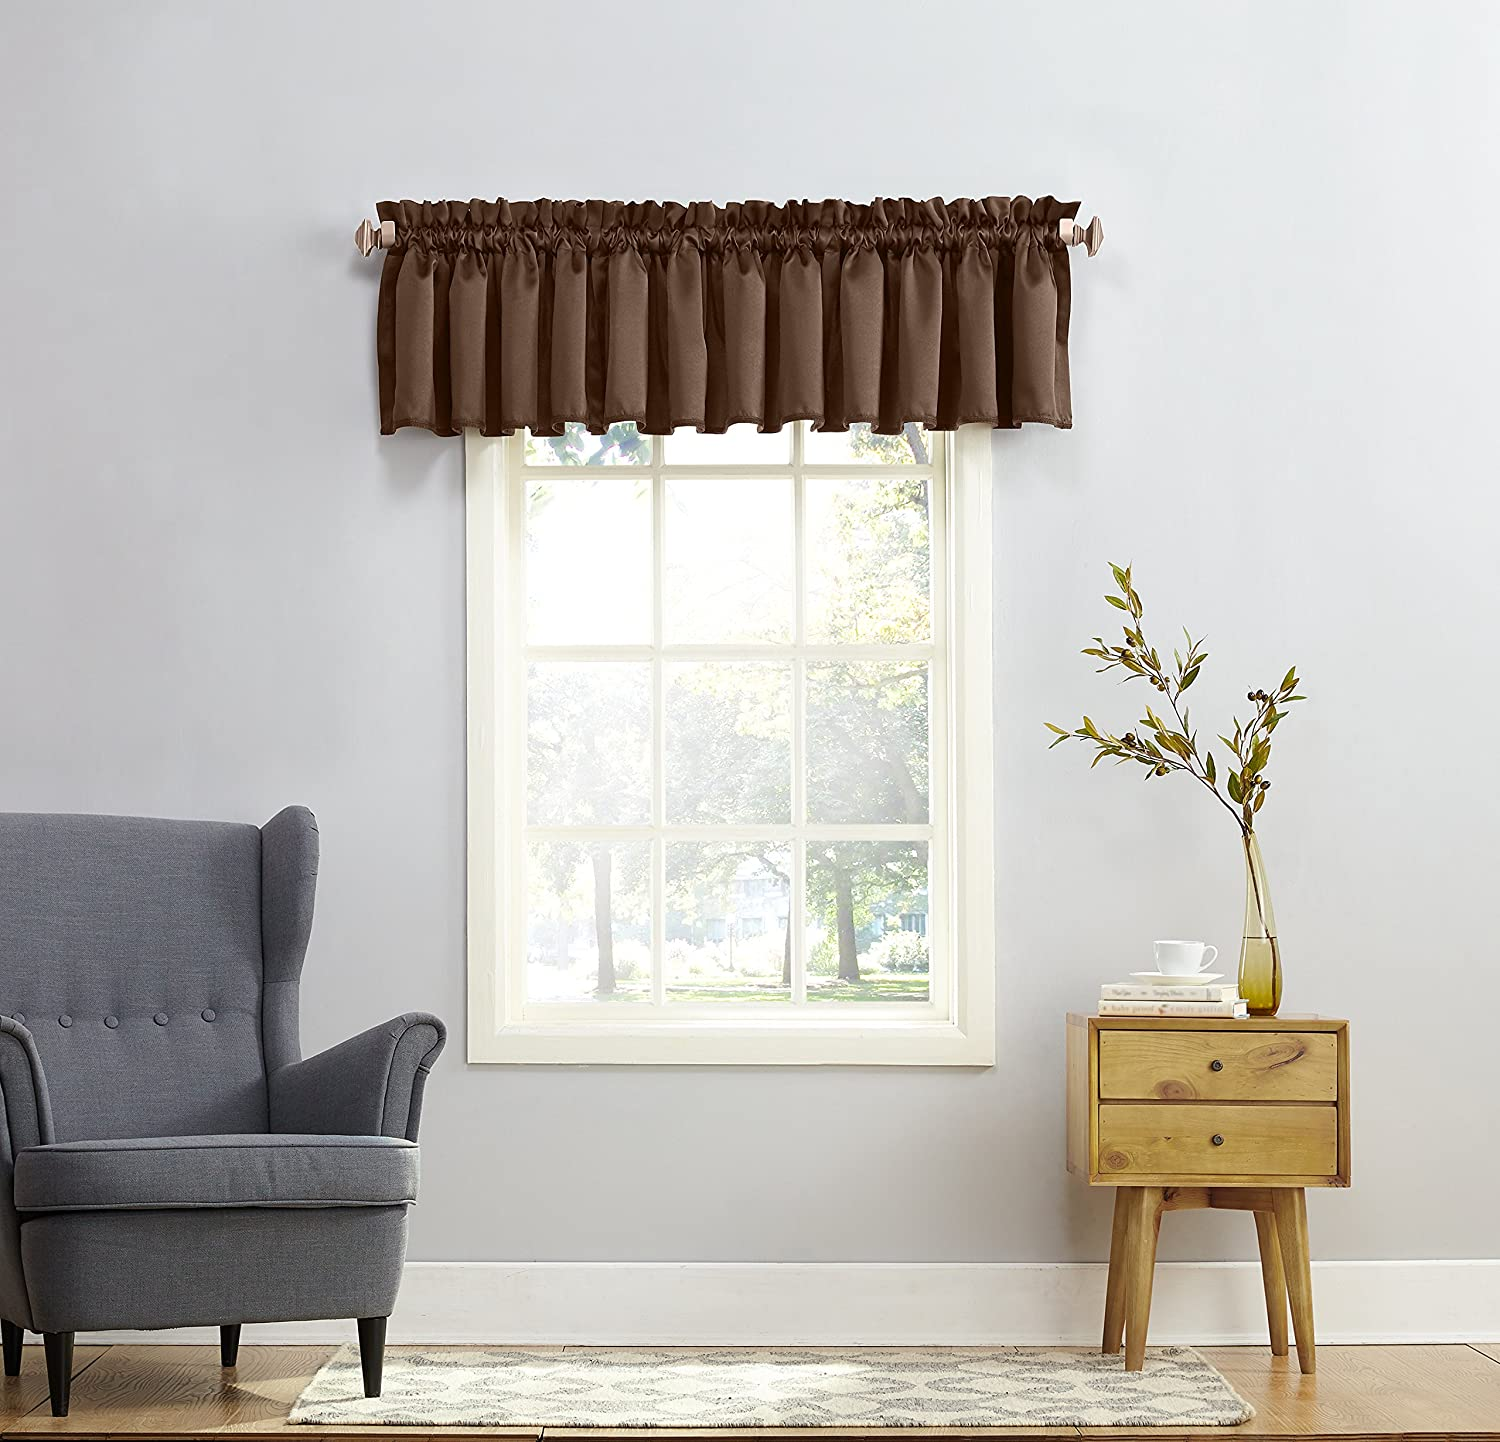 Sun Zero Barrow Energy Efficient Rod Pocket Curtain Valance Chocolate Brown